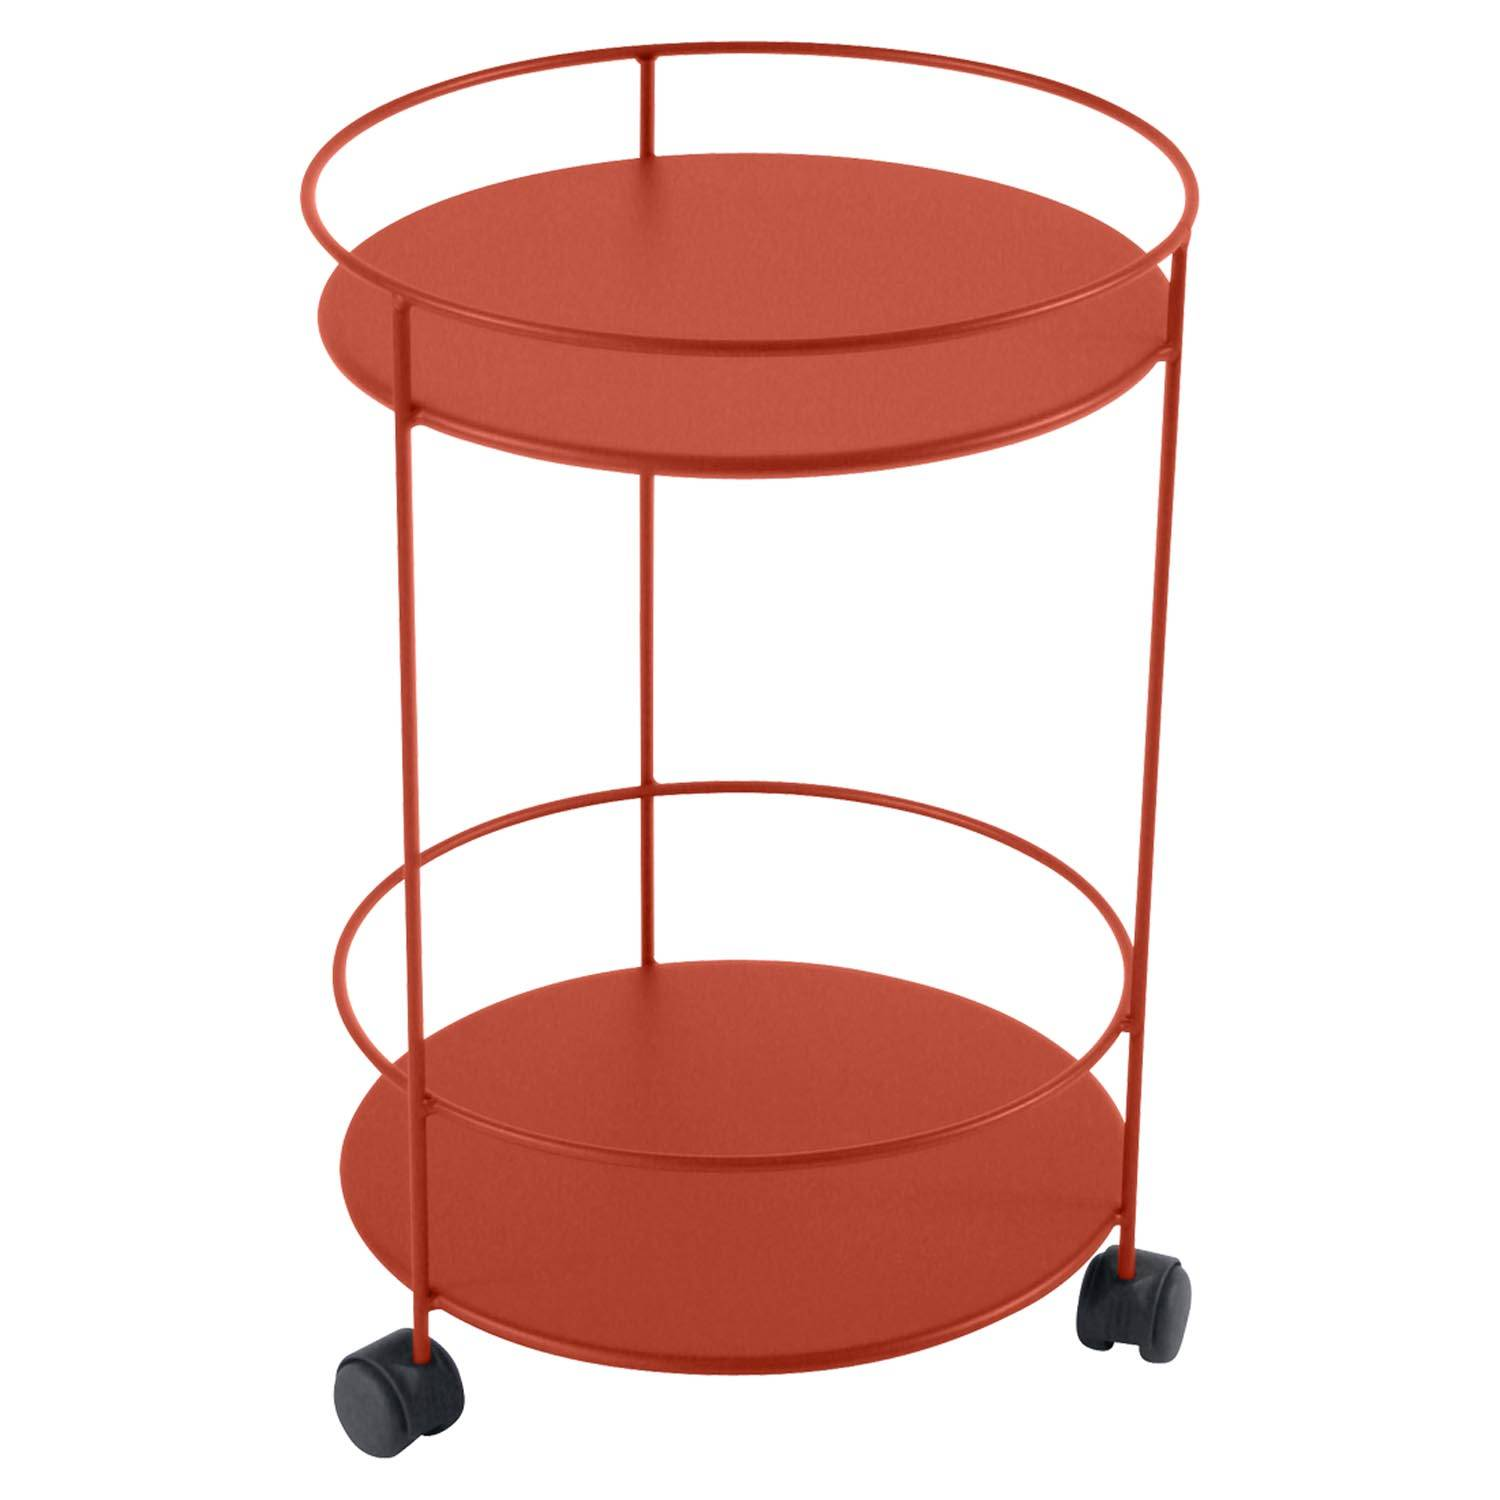 Fermob Small Table Perforated Ø40, Paprika